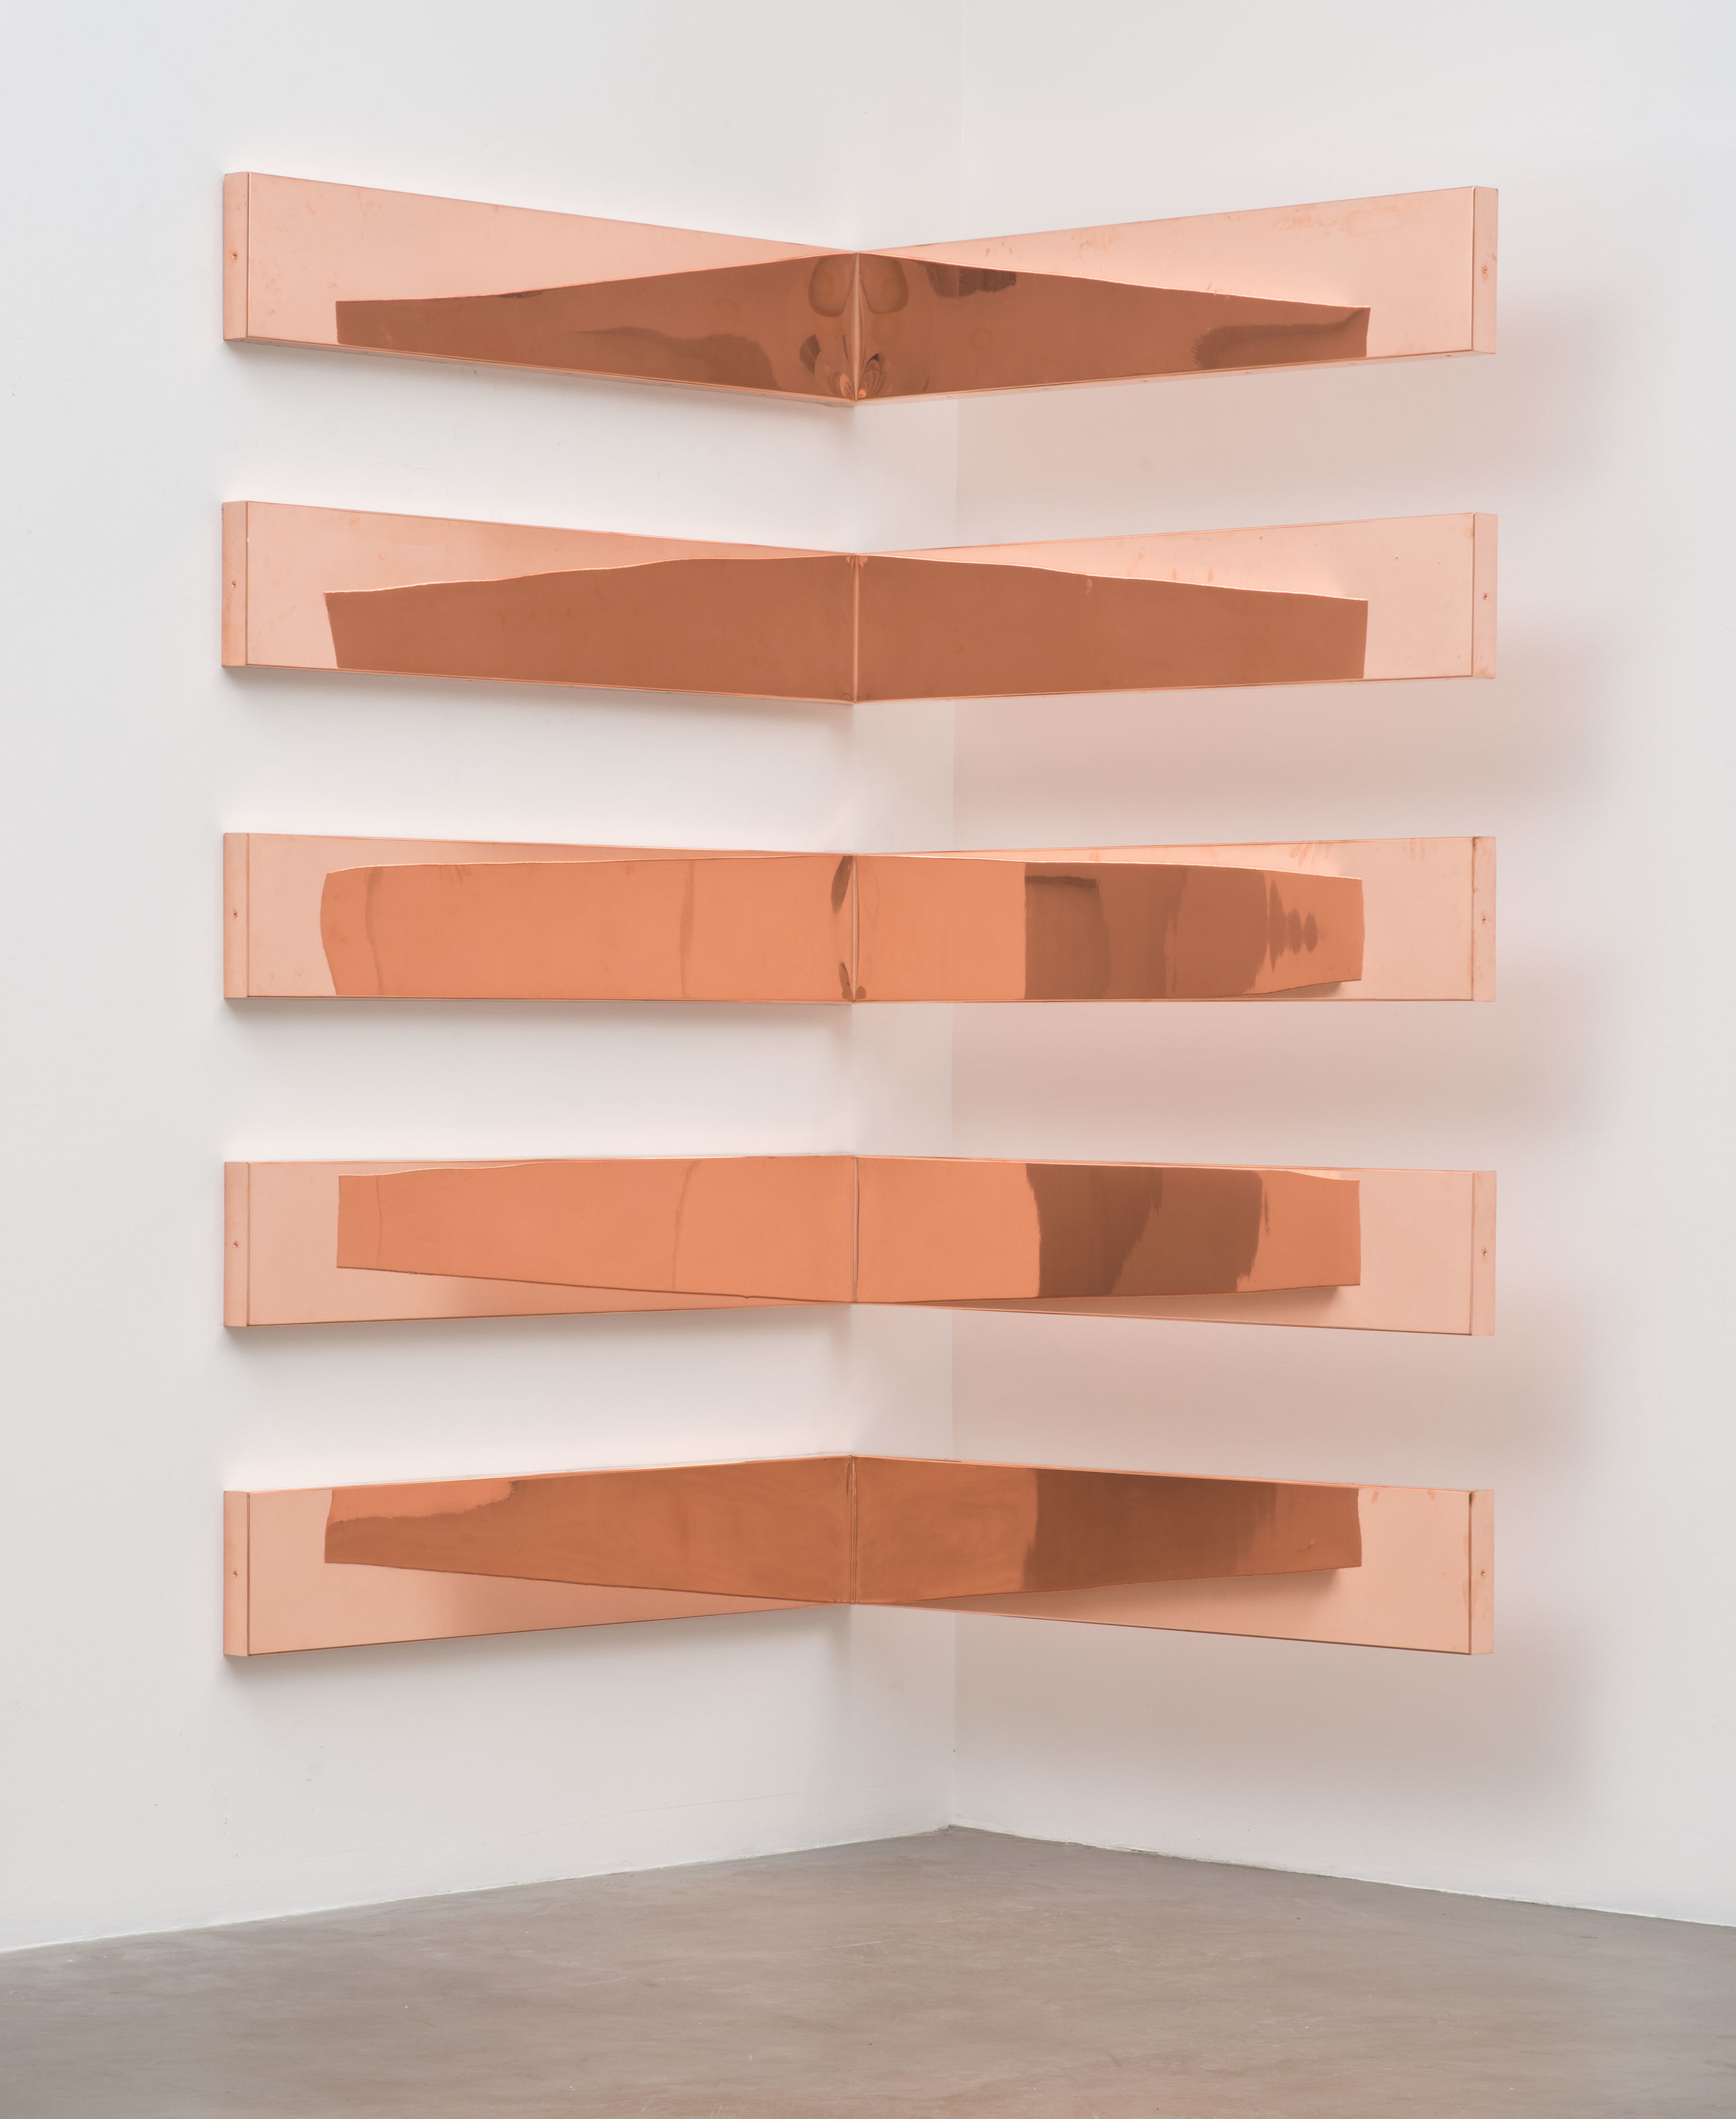 """Copper Surrogate (60"""" x 120"""" 48 ounce C11000 Copper Alloy, 90º Bend, 60""""Bisection/5 Sections: December 4/December 7, 2014, Miami Beach, Florida, February 10–12, 2015, Los Angeles, California)   2014–  Polished copper  11 x 60 x 60 inches each, 5 parts   Surrogates (Modular, Art Handling), 2014–    Walid AlBeshti, 2015"""